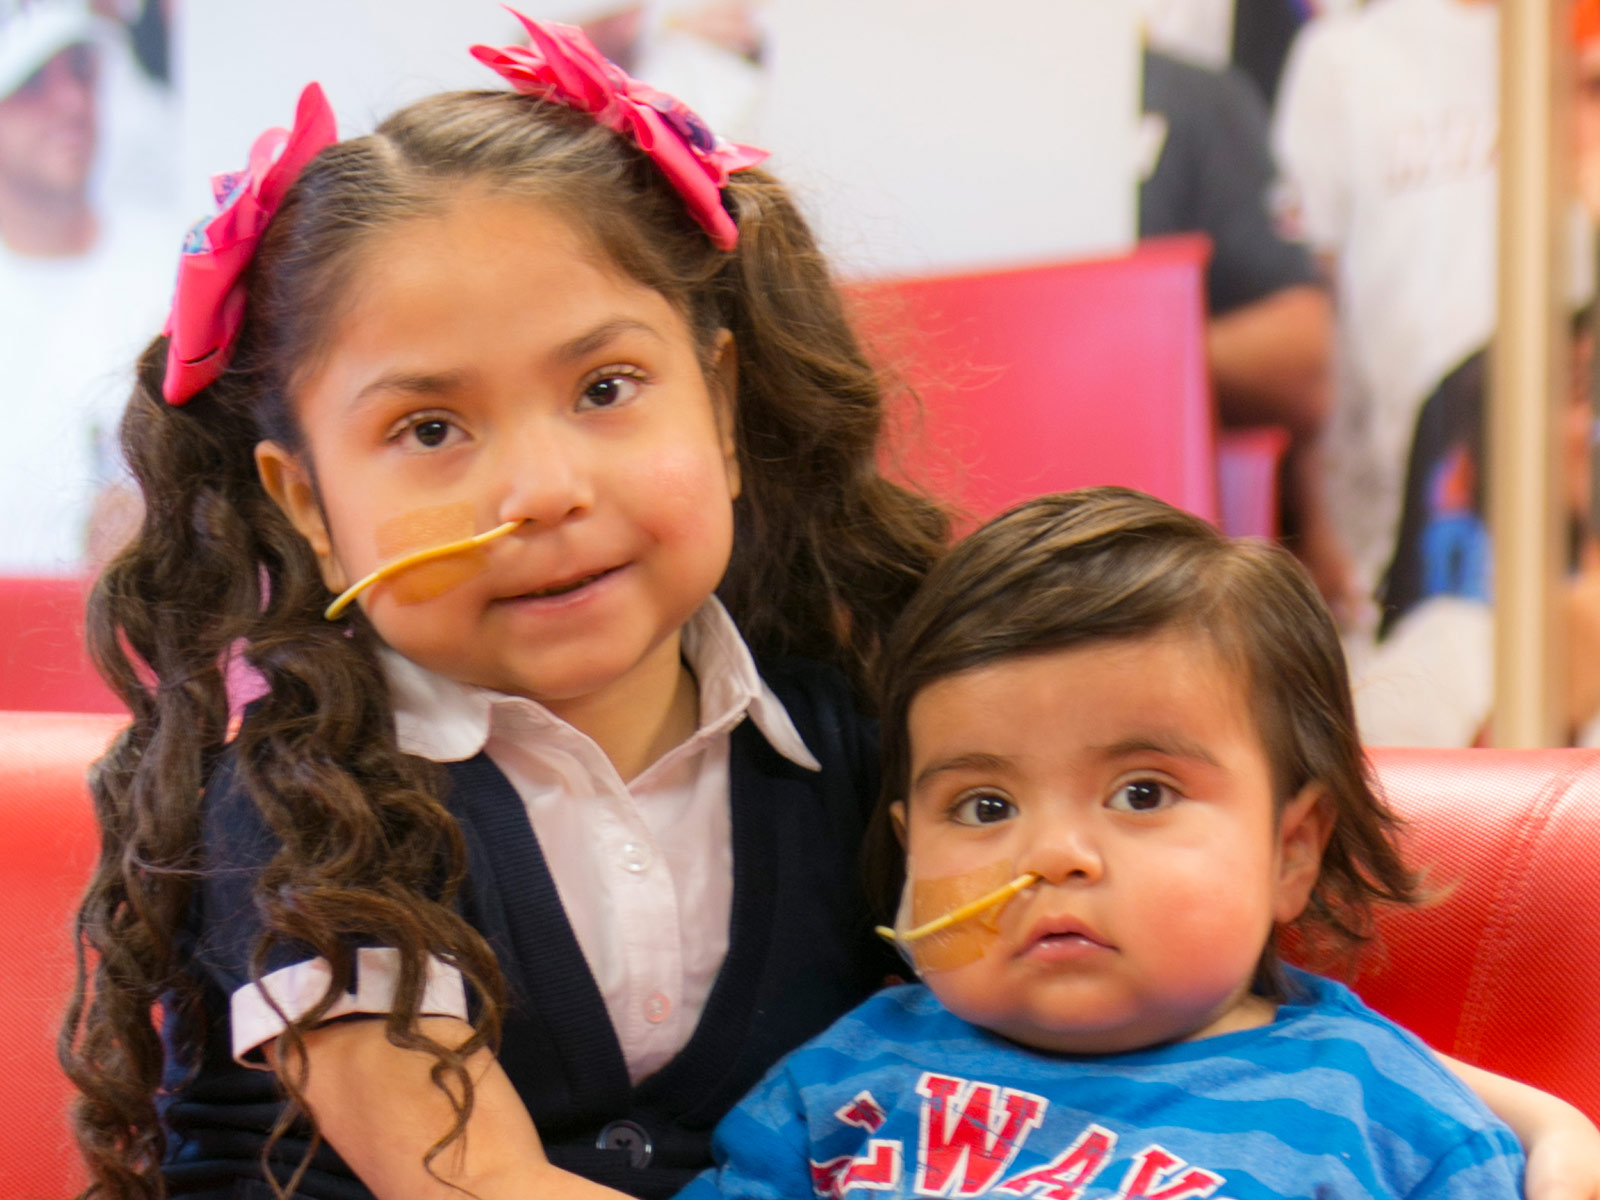 Two young children sitting next to each other, they have a tube coming out of their noses, they both look at the camera